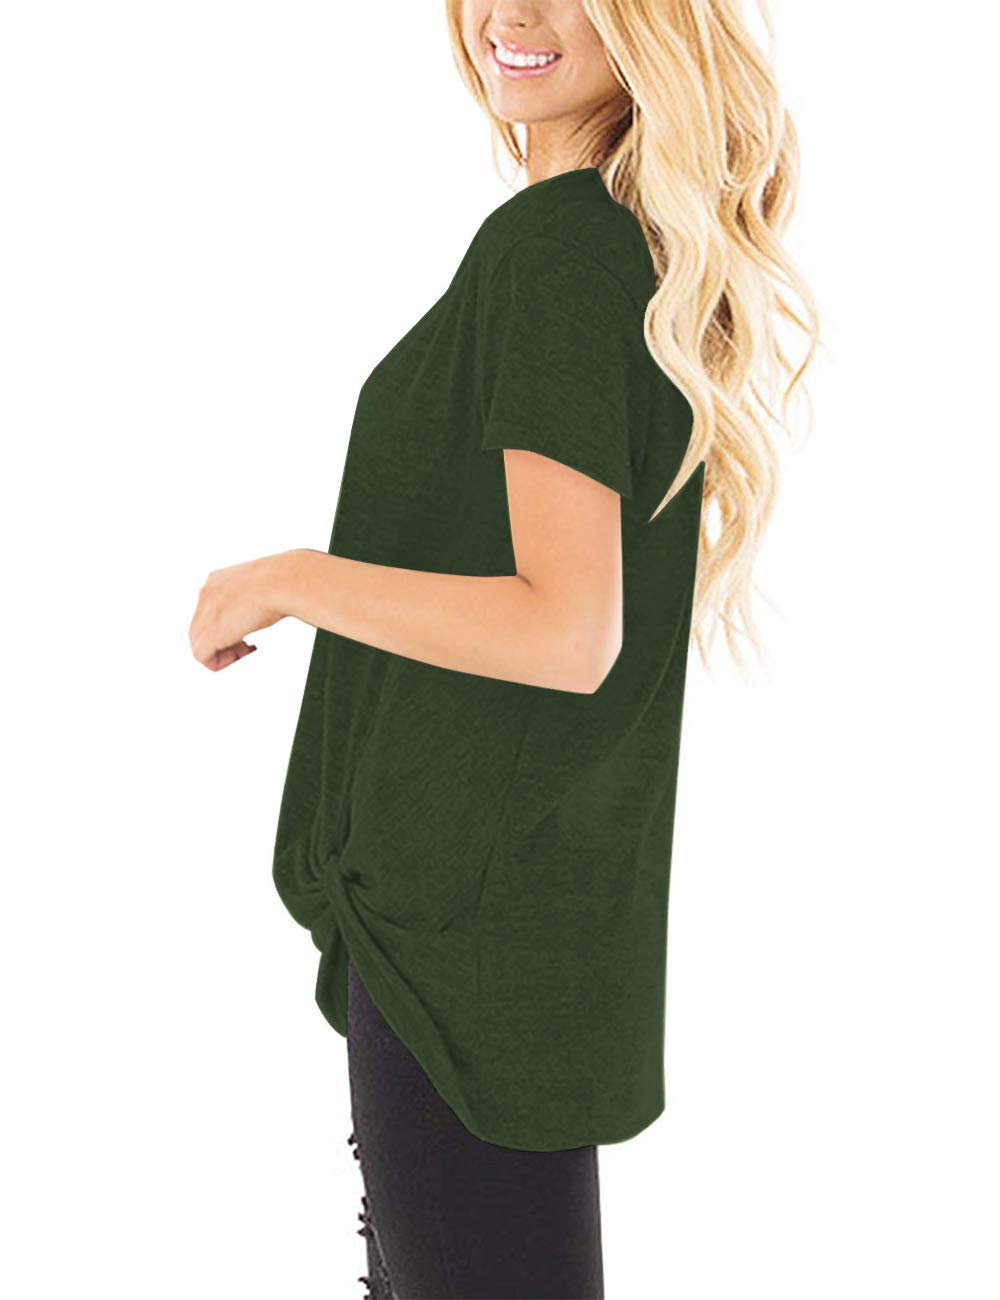 Women\'s Basic Short Sleeve Tops with Knot Front Shirts Blouses (XL, Green)